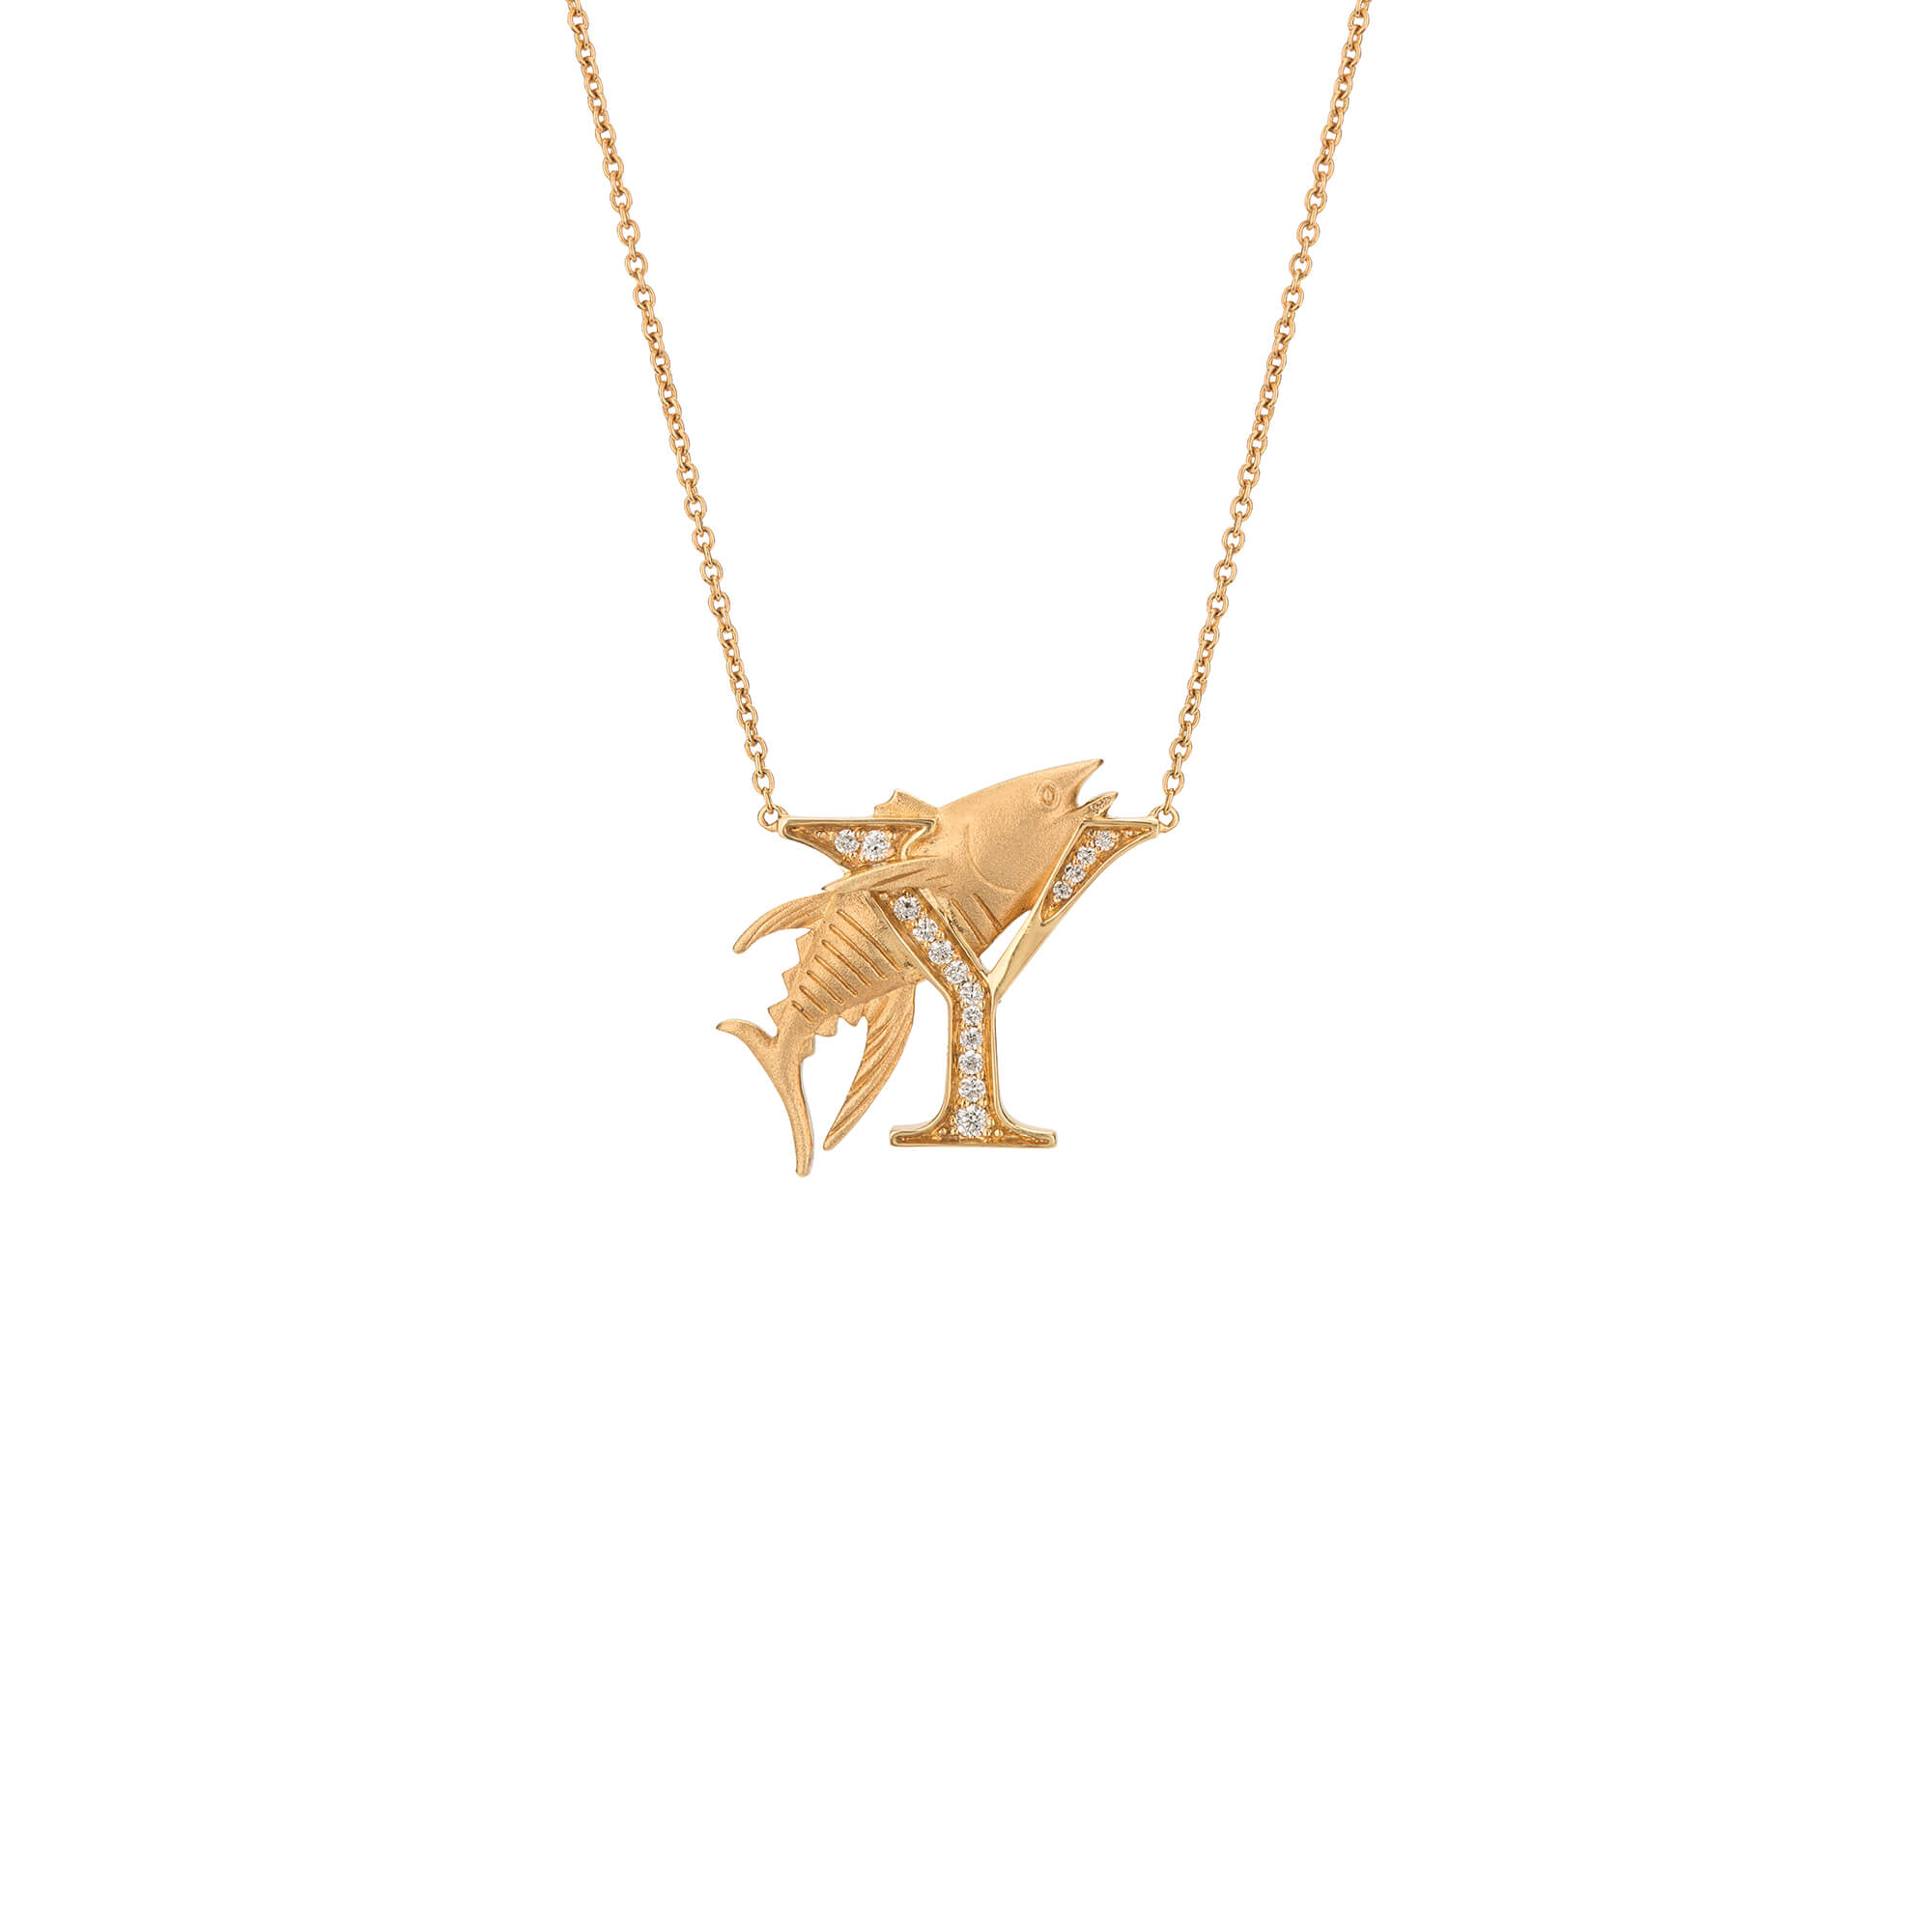 Y is for Yellowfin Tuna Gold Necklace | Fish Tales